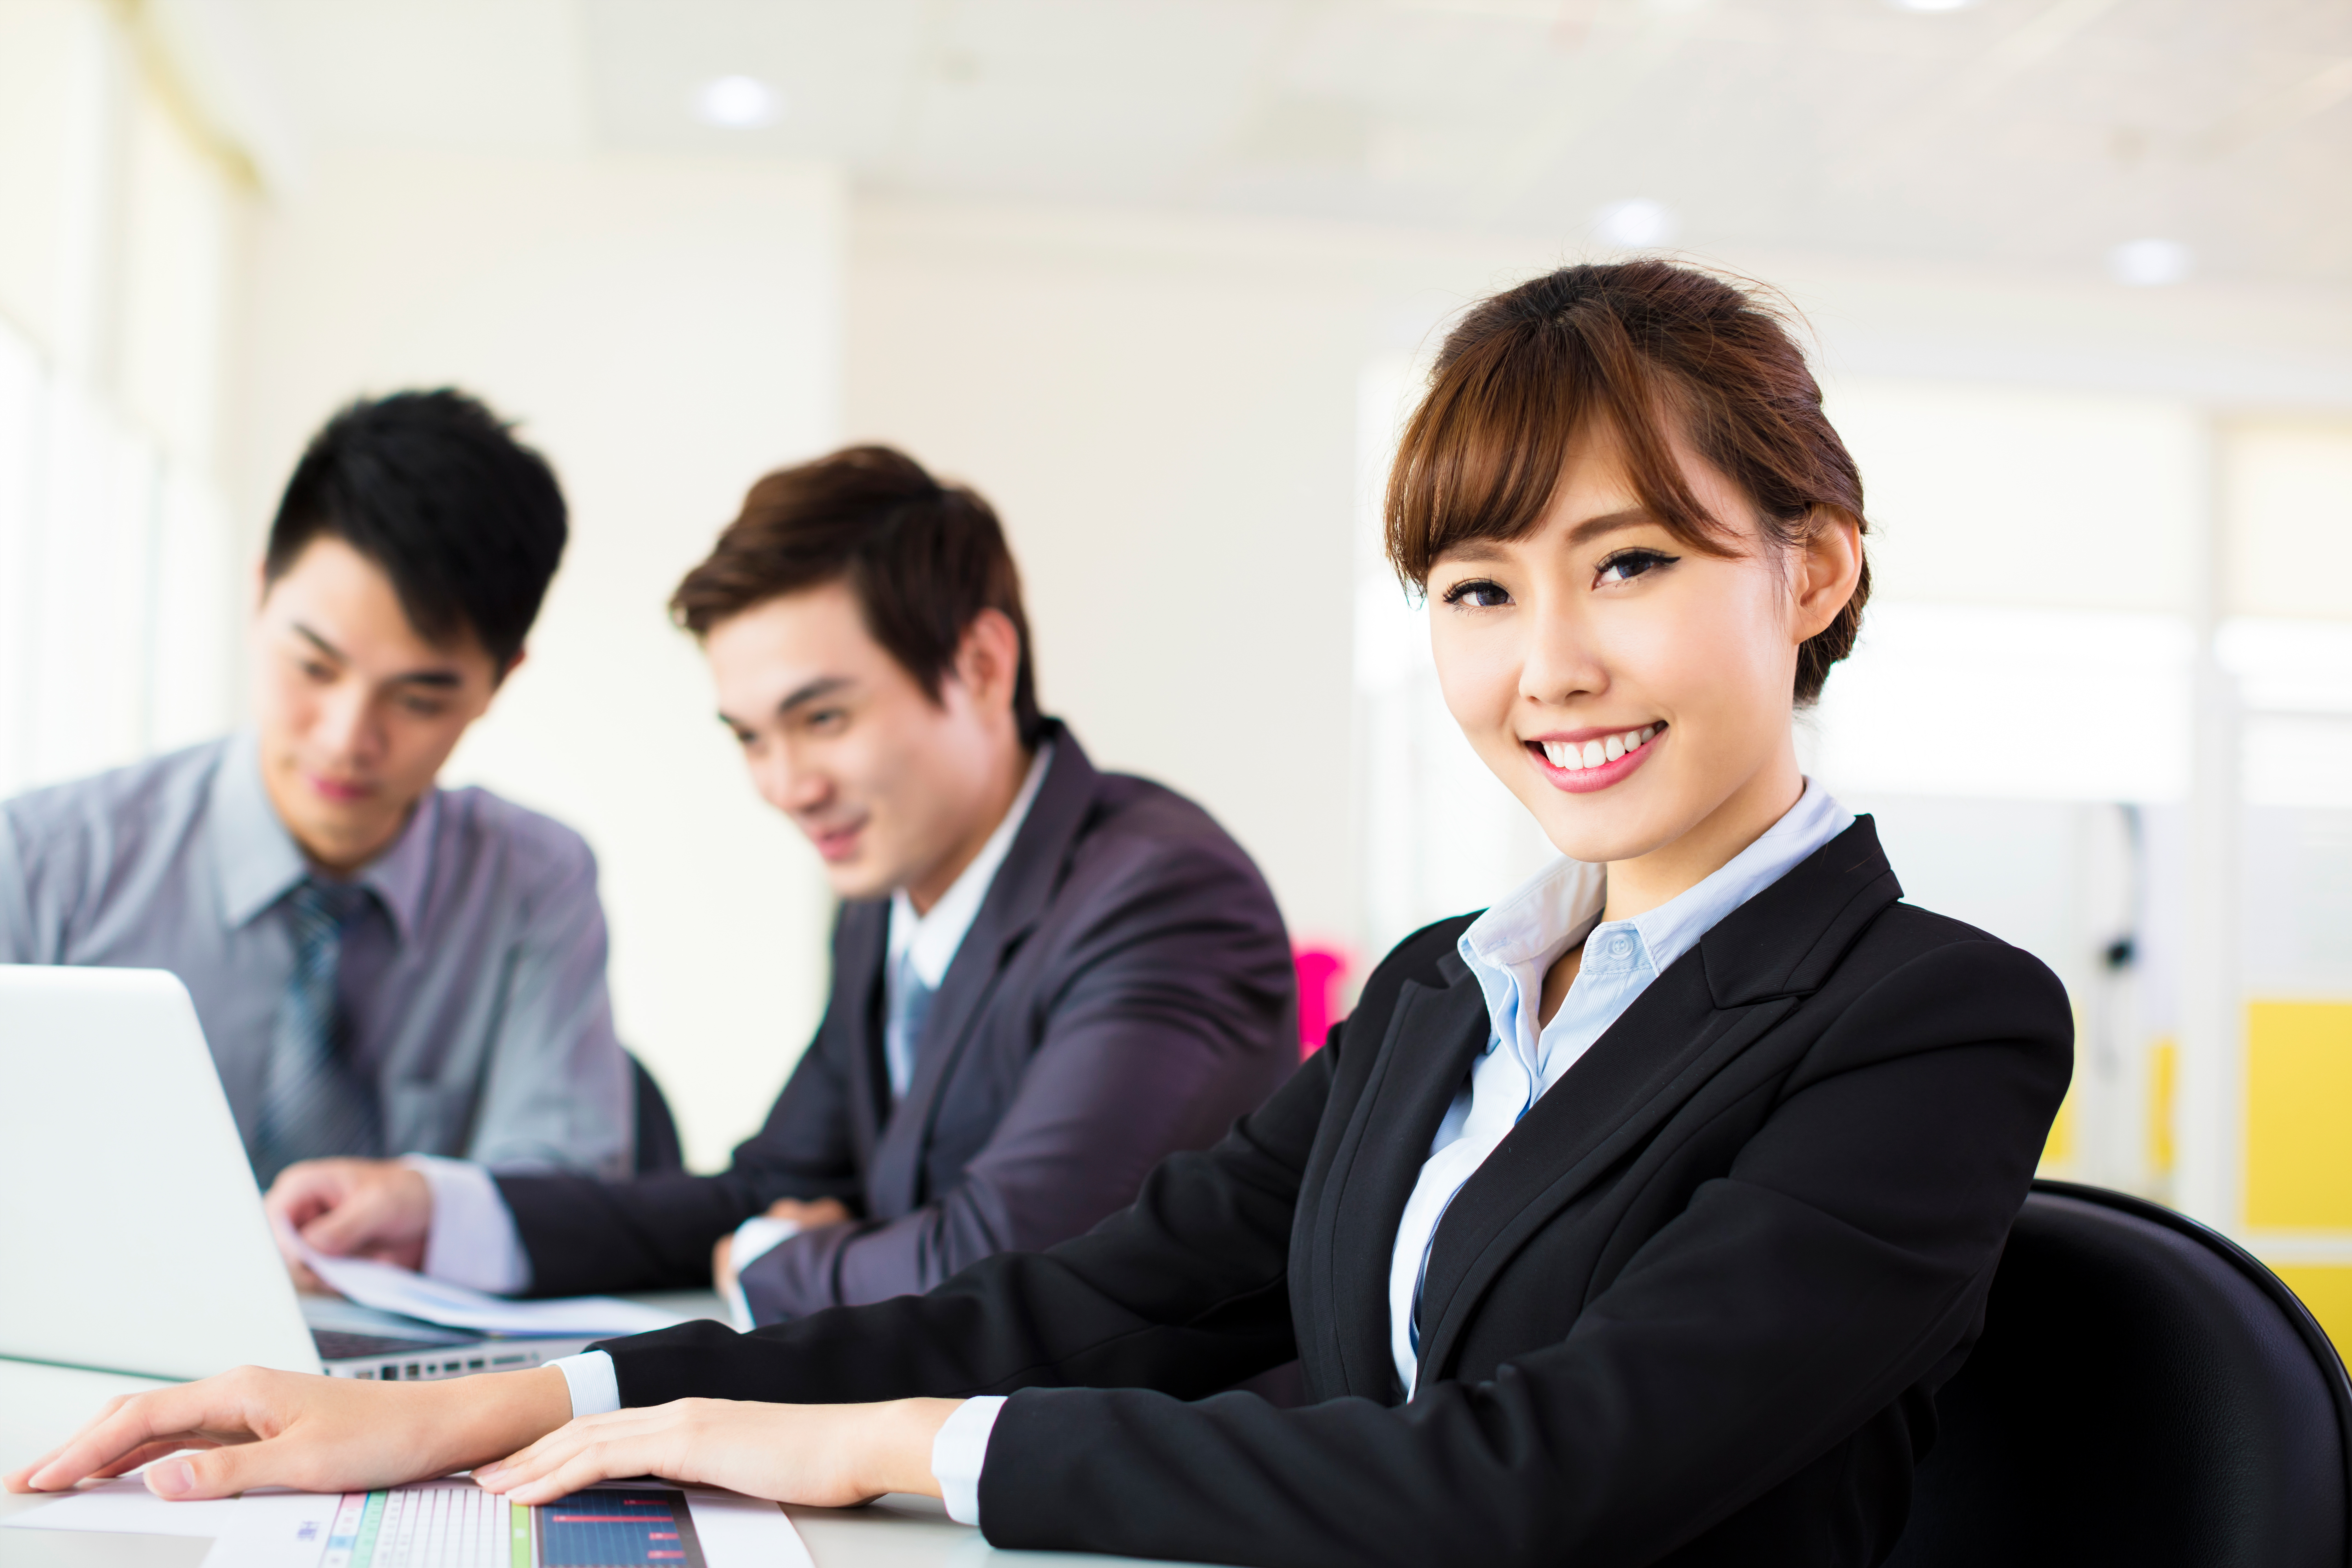 1 female working adult and 2 male colleagues in office